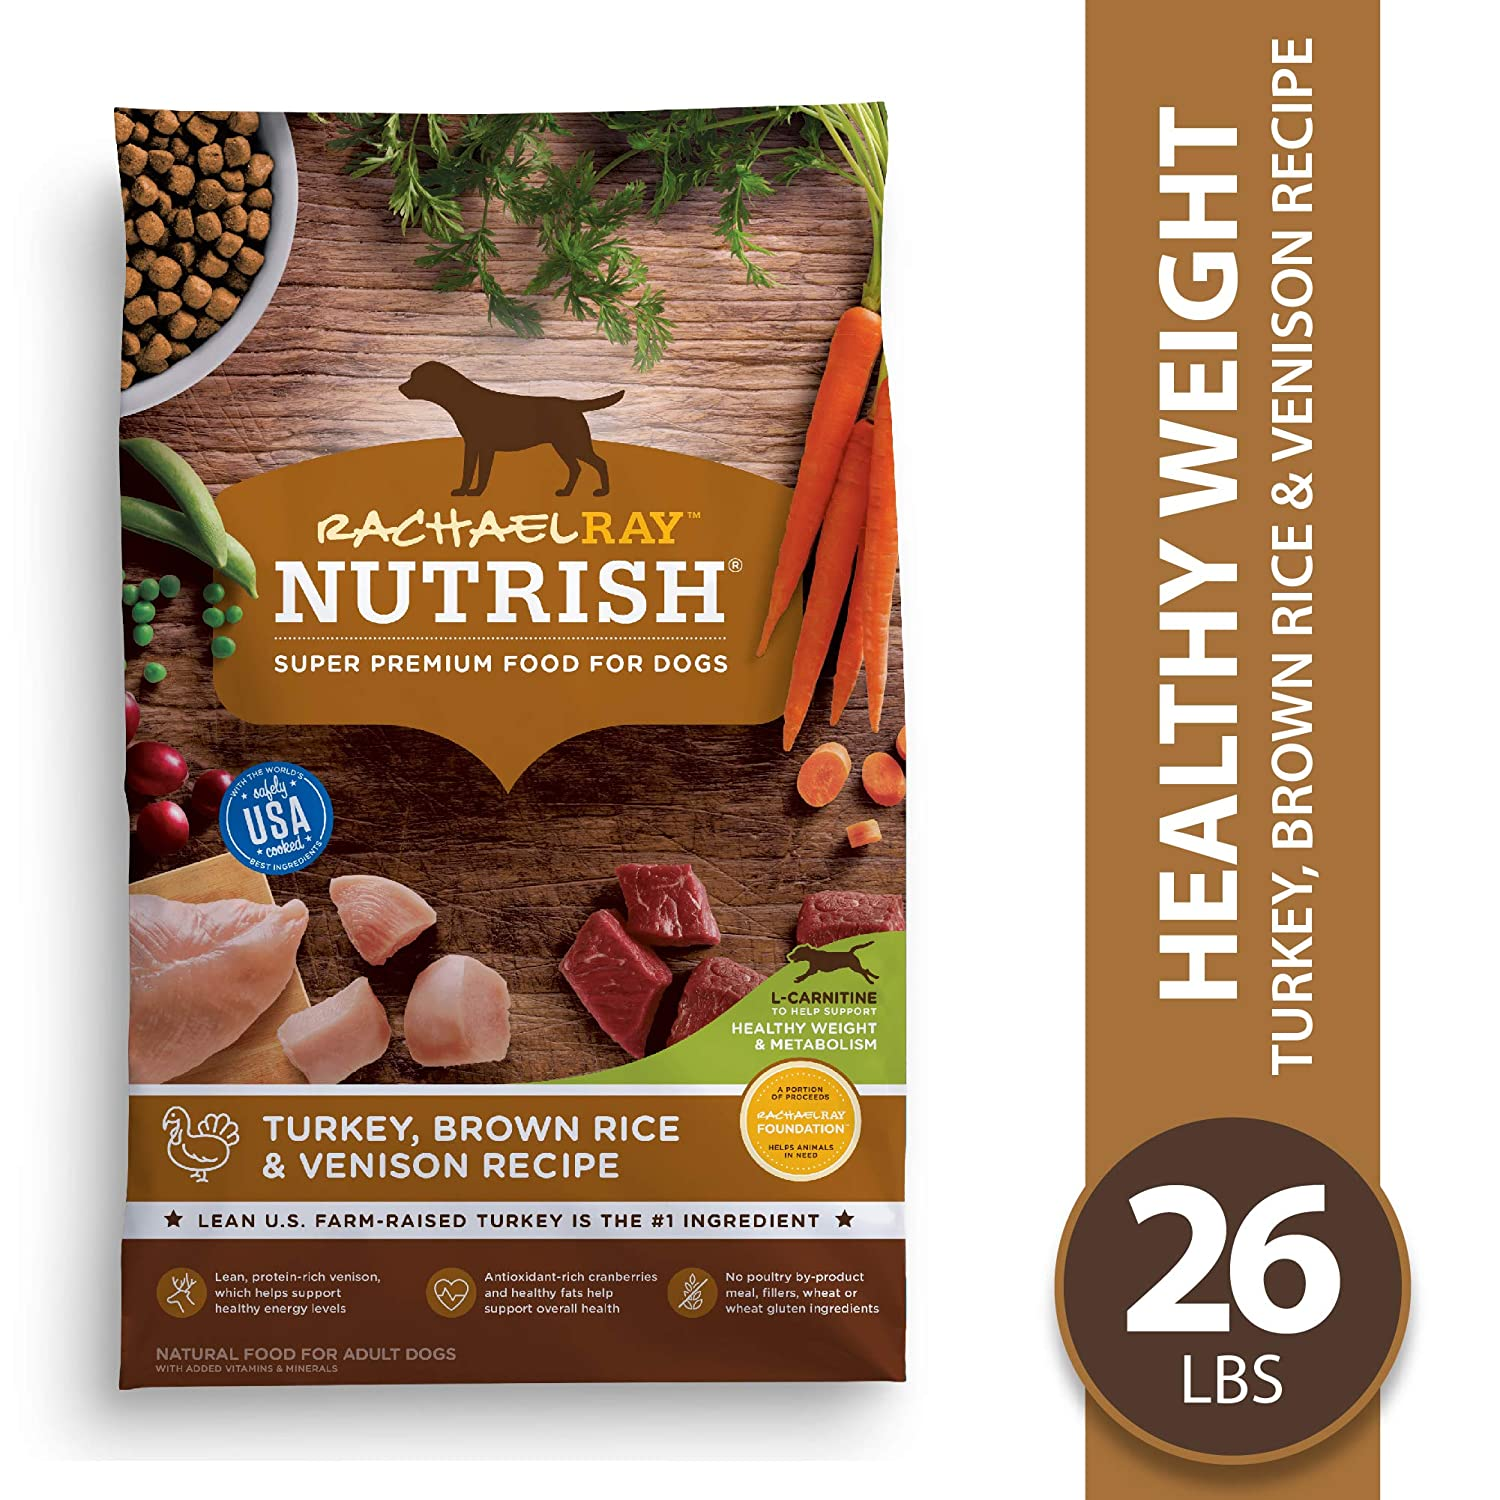 2.Rachael Ray Nutrish Super Premium Dry Dog Food